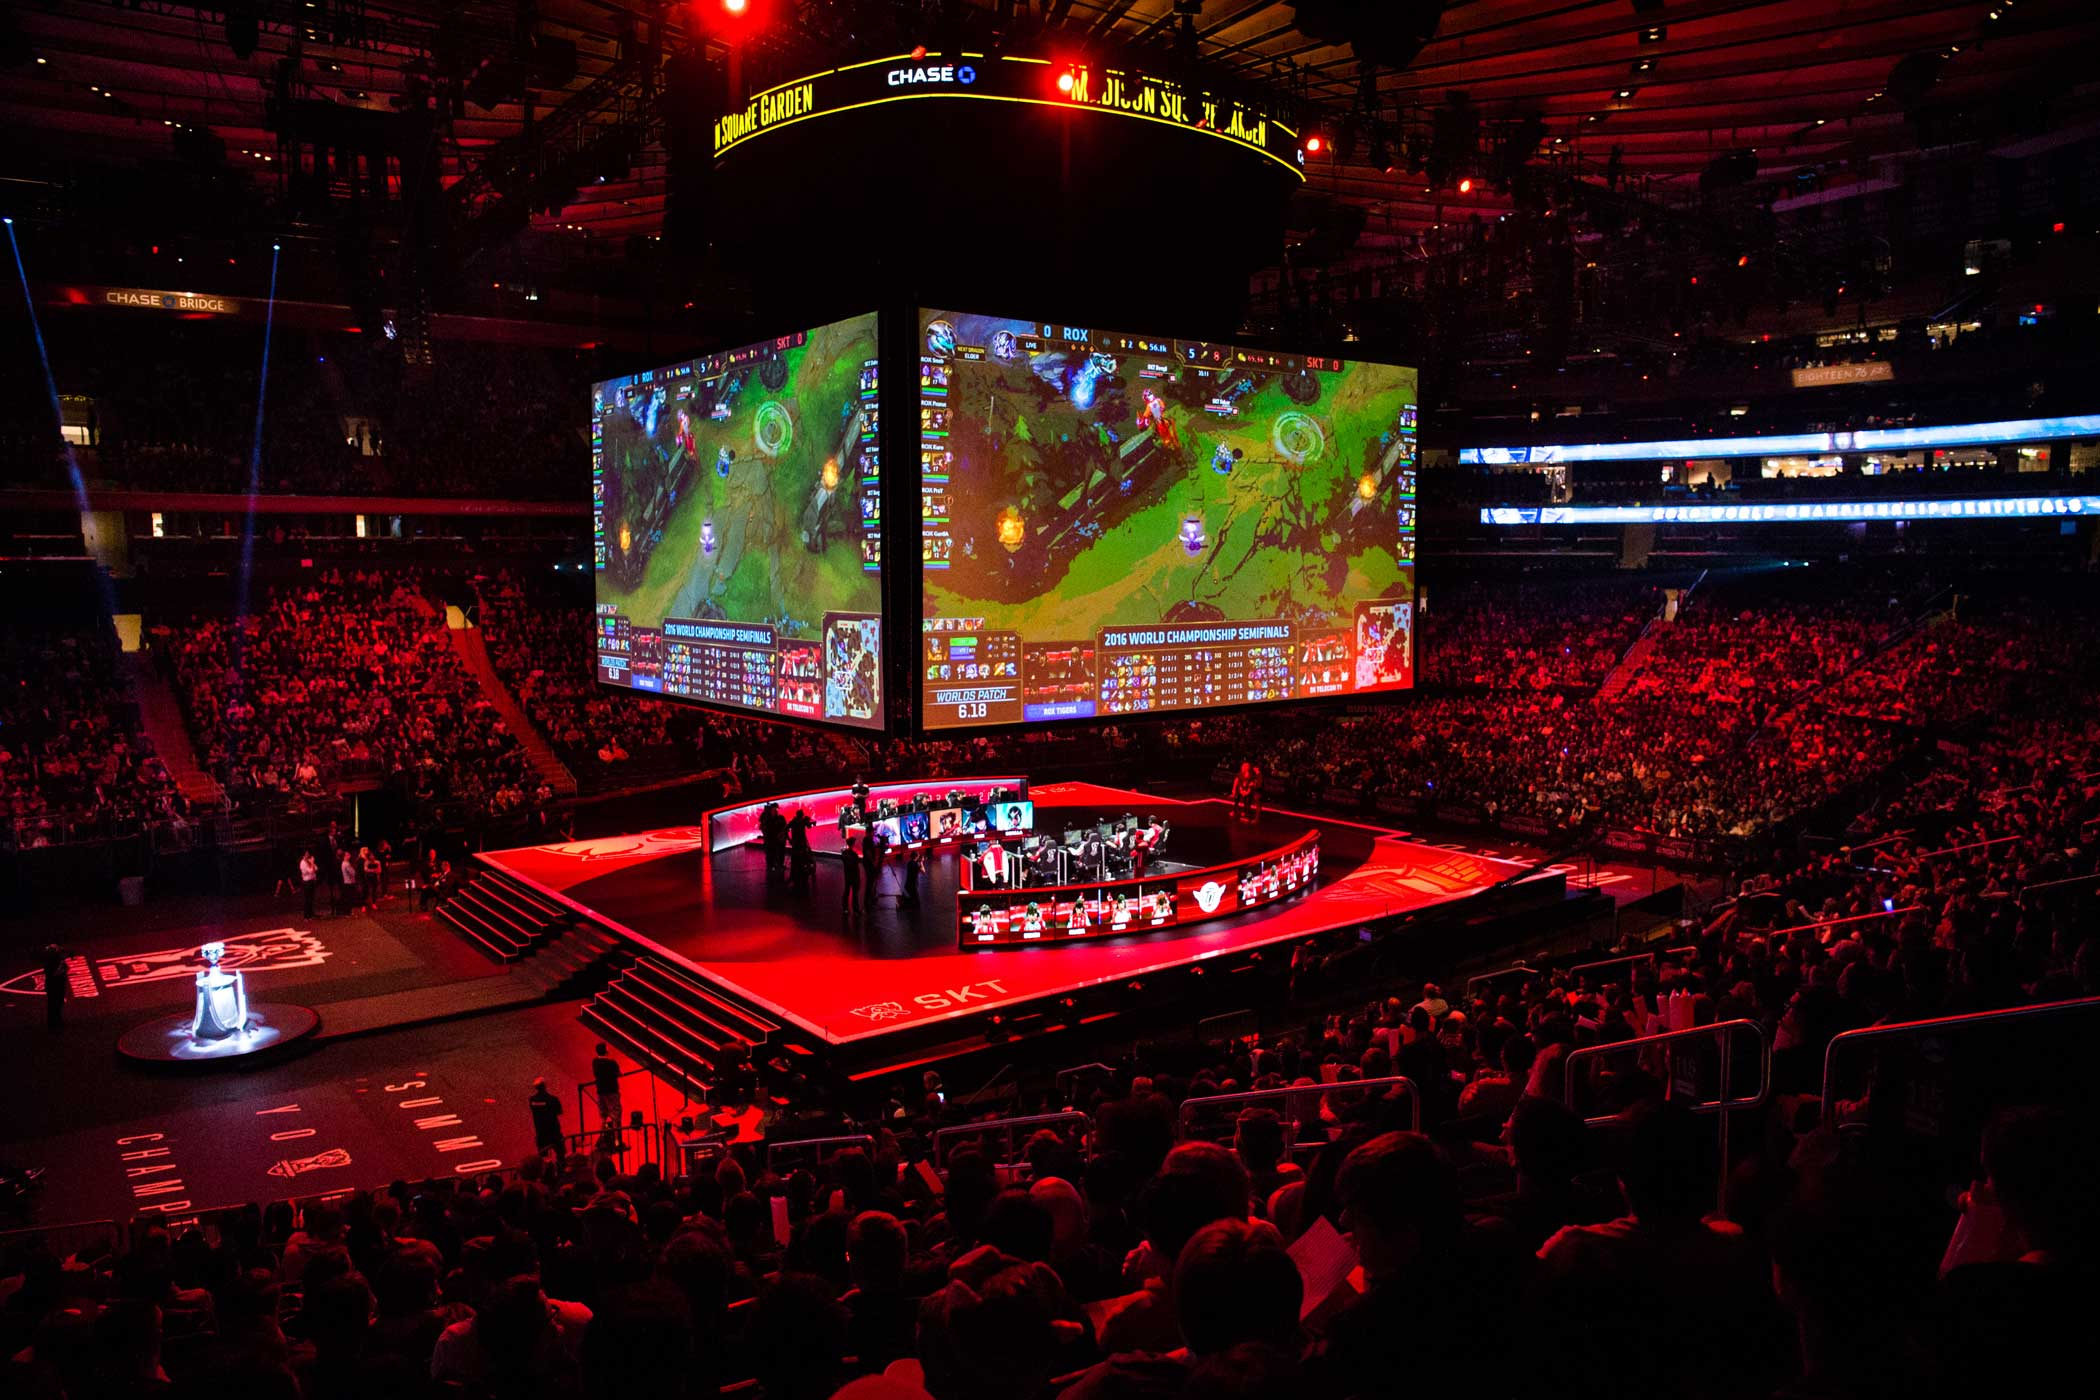 A sold-out crowd at Madison Square Garden watches the first semifinal matchup for the League of Legends World Championship between the ROX Tigers and SK Telecom T1 on Oct. 22, 2016.